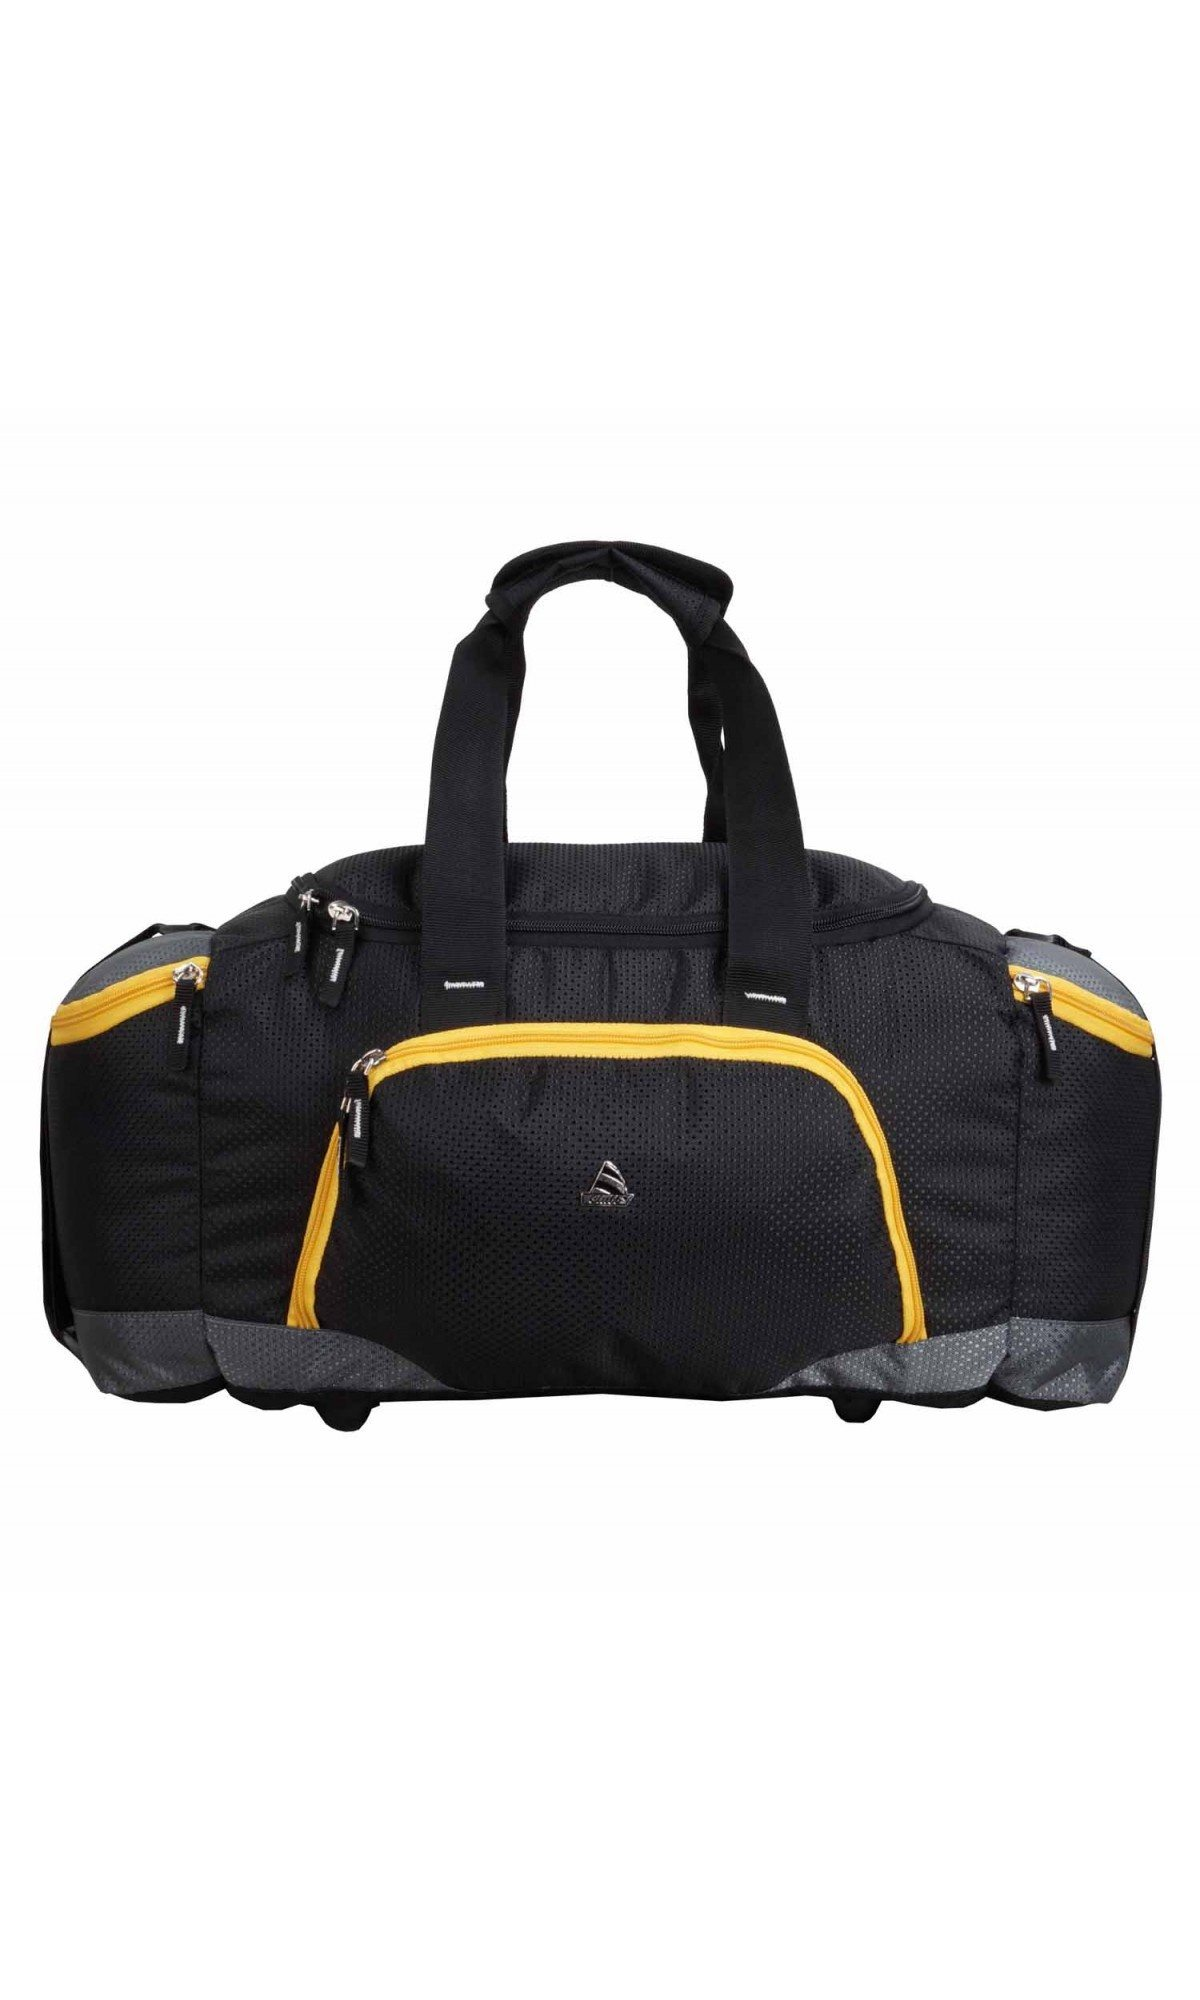 d28e5330414c You can buy directly from us buy visiting Buy Designer Bags Online India  from ClubbCart . We offer FREE shipping   Cash on Delivery facility.